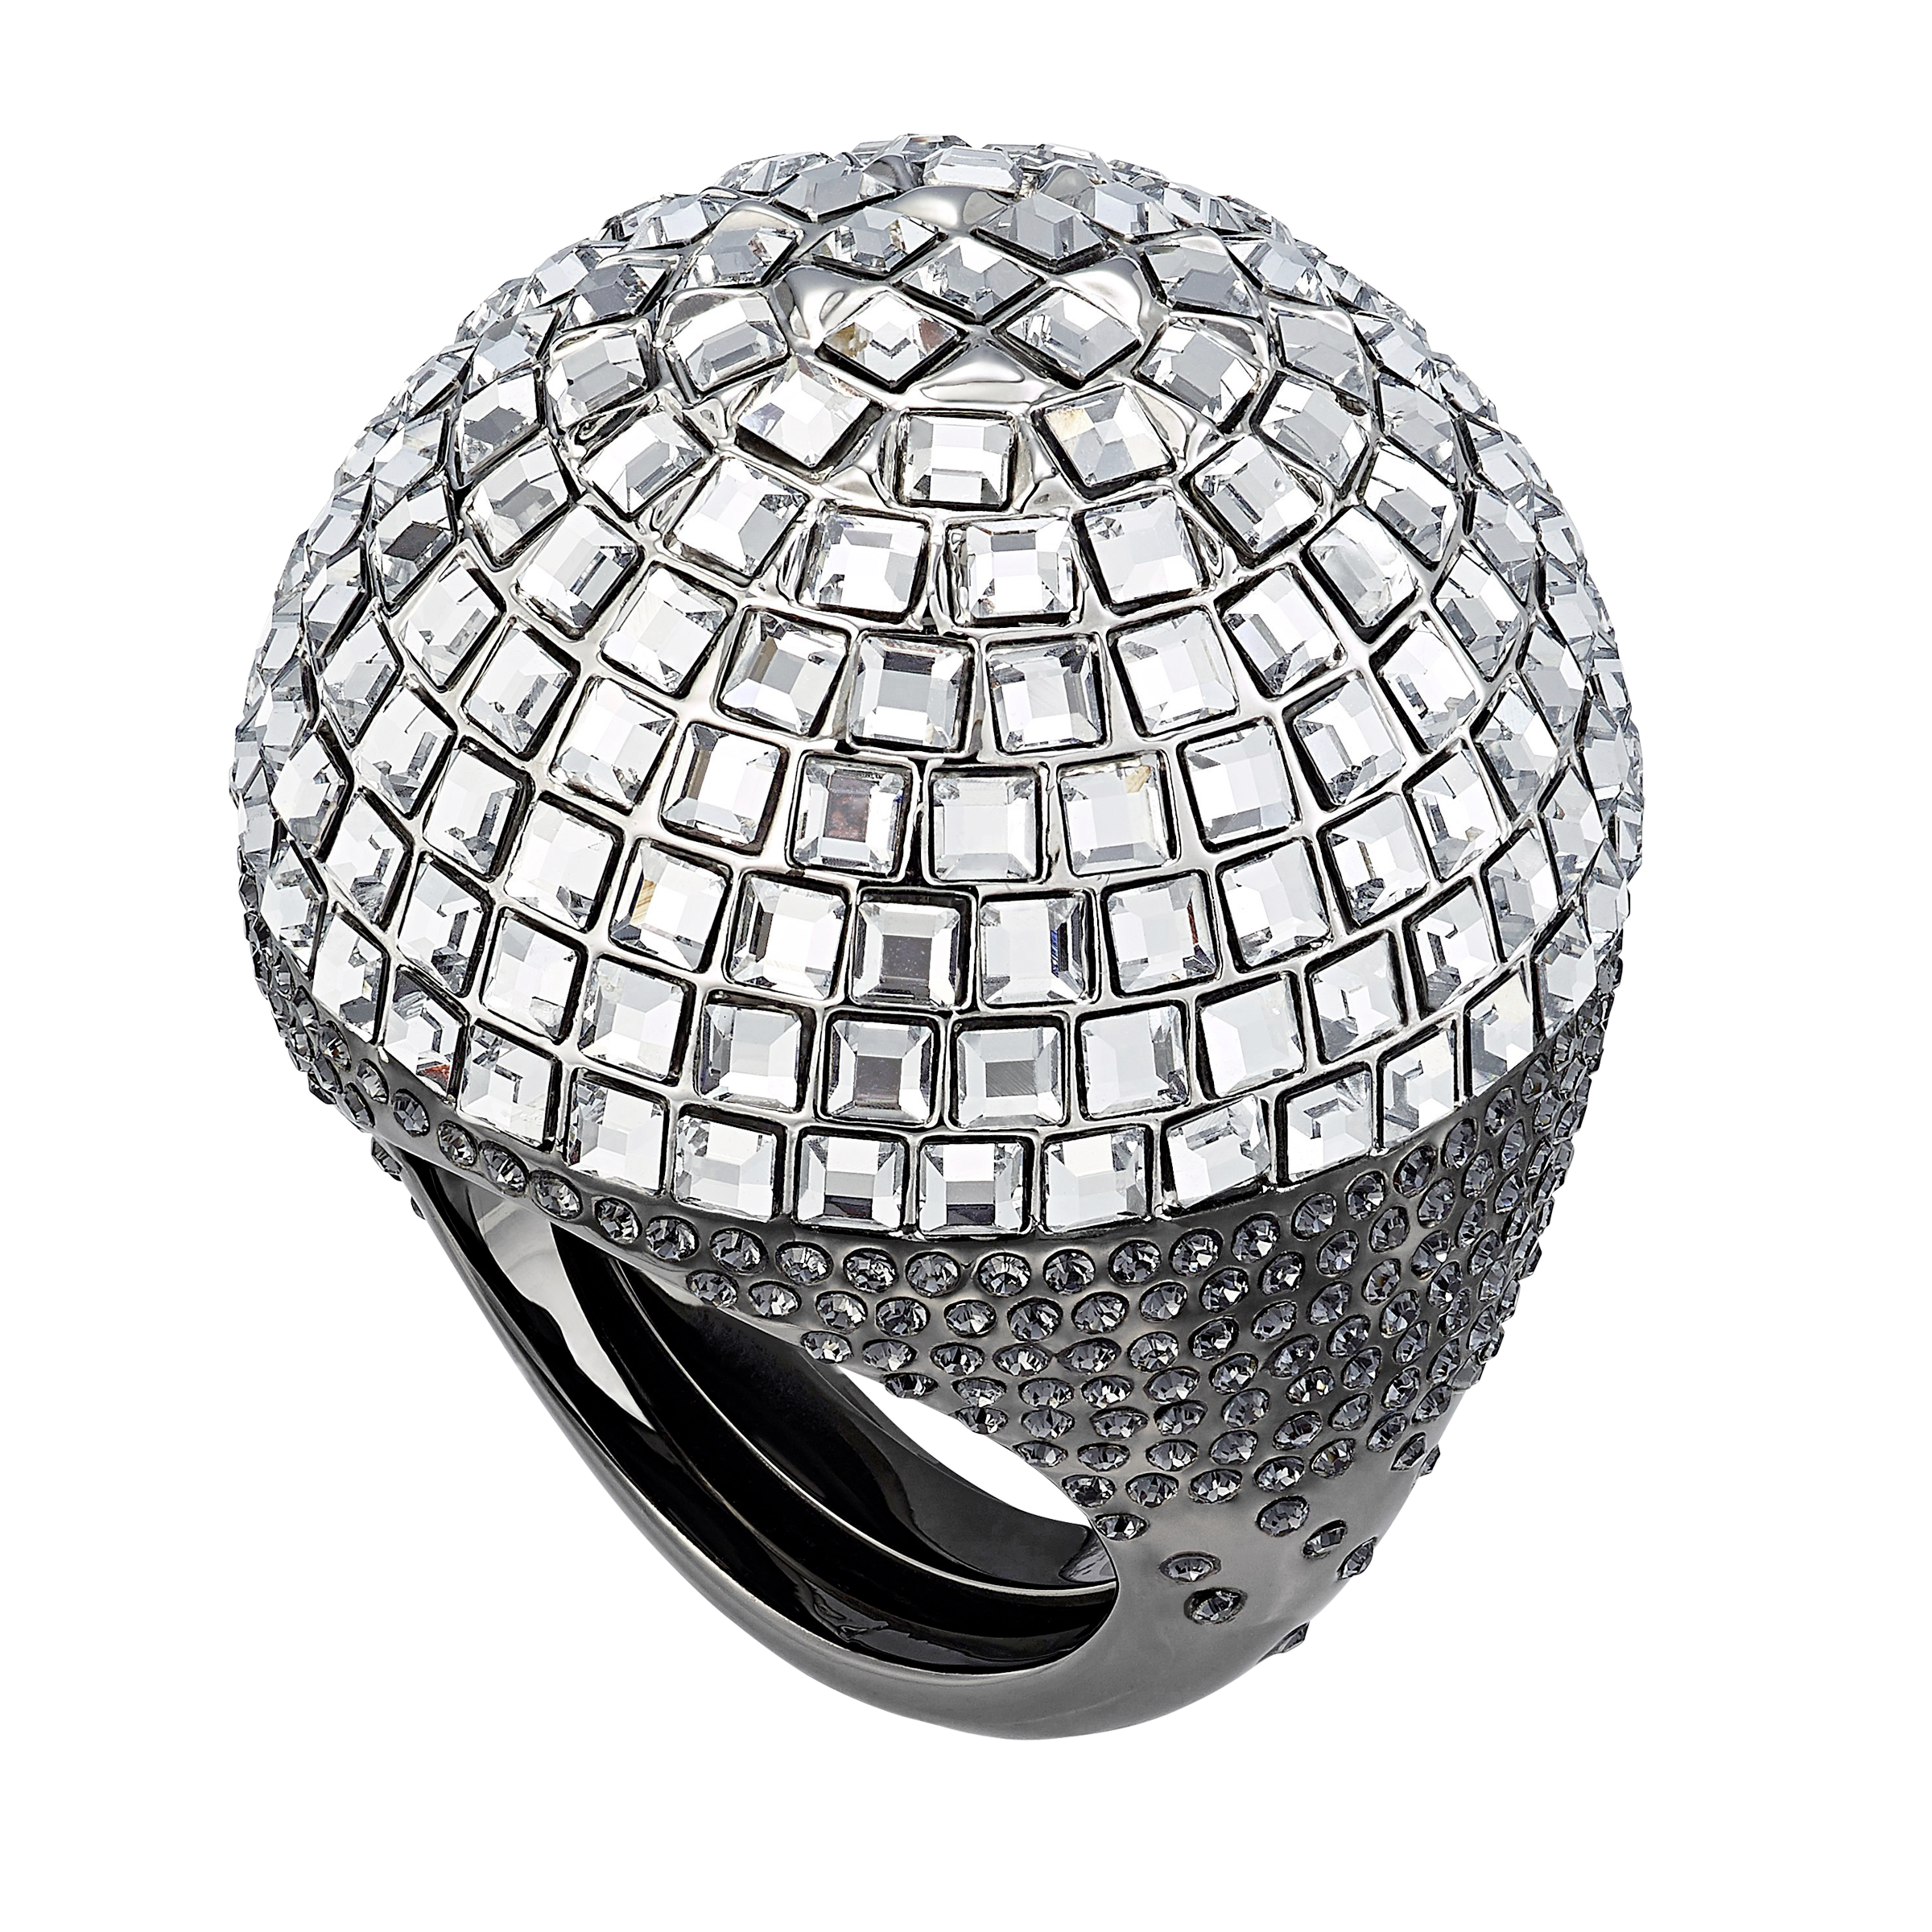 Celestial Fit Cocktail Ring, Gray, Black Ruthenium